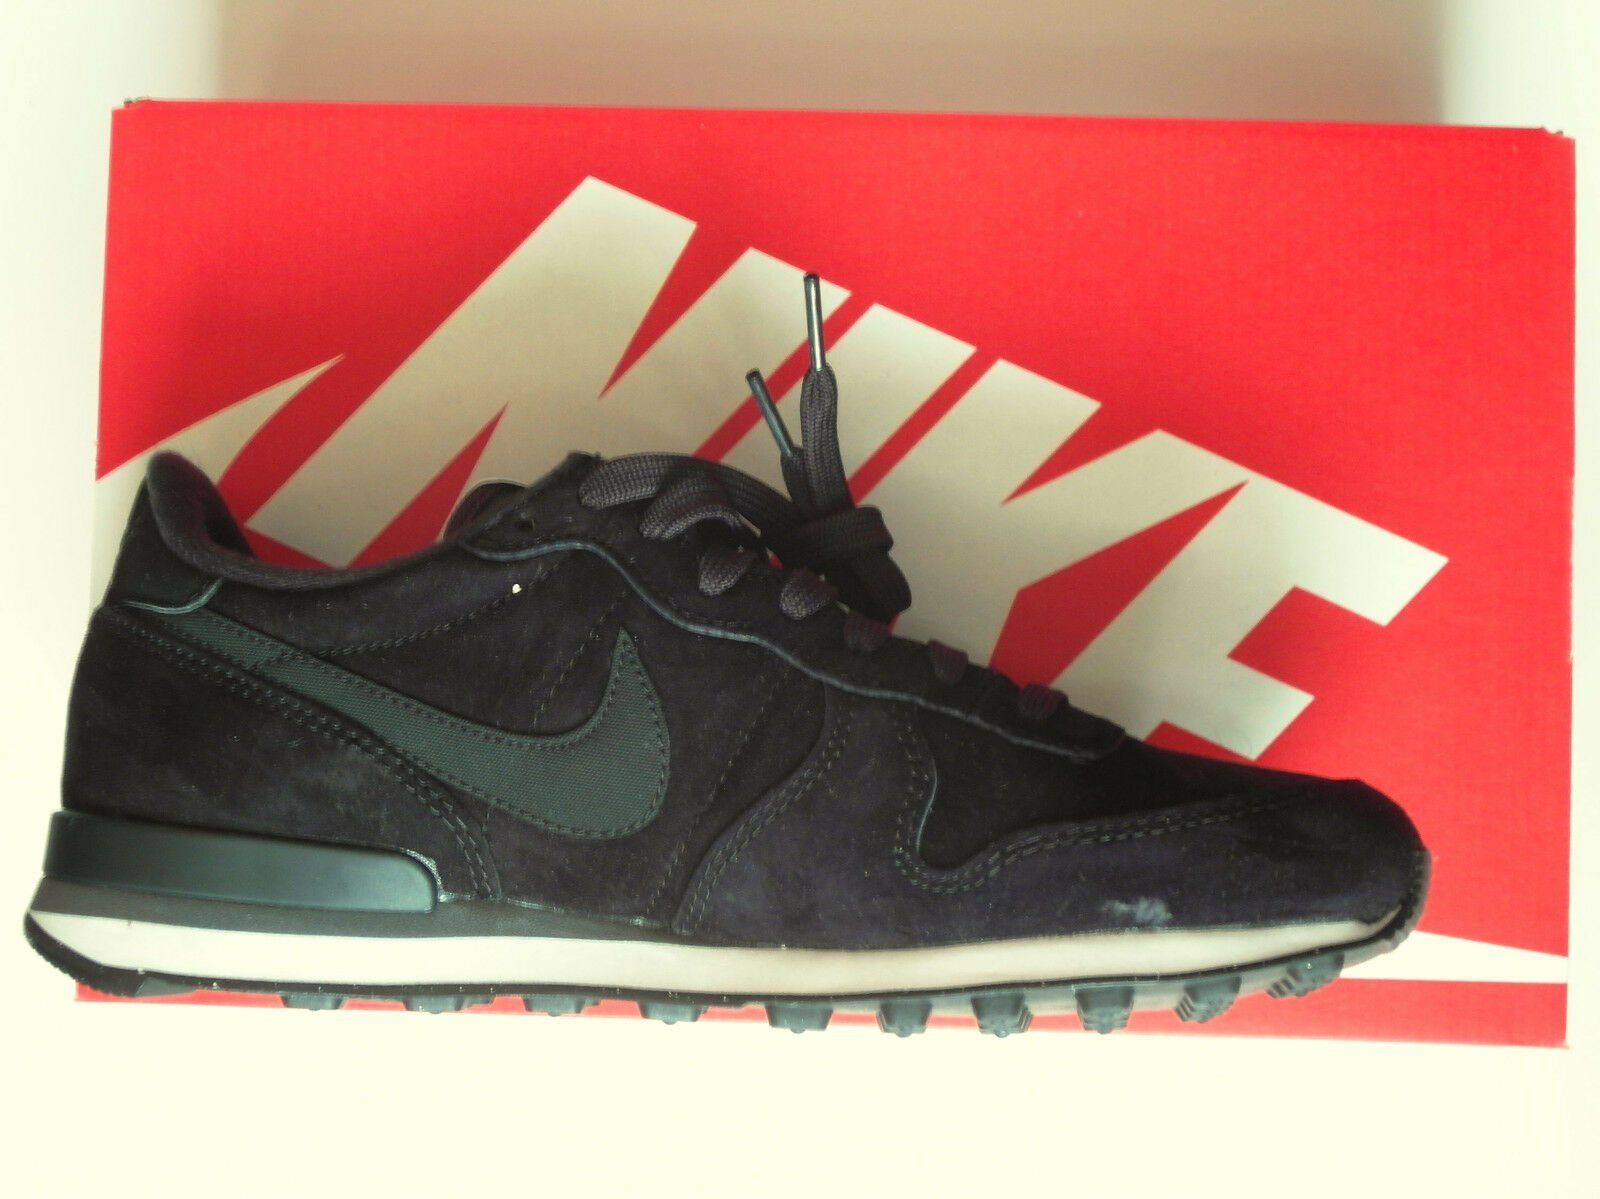 Nike Internationalist Leather Schuhe Größe EUR 41 UK 7, US 8, 26cm, Schwarz